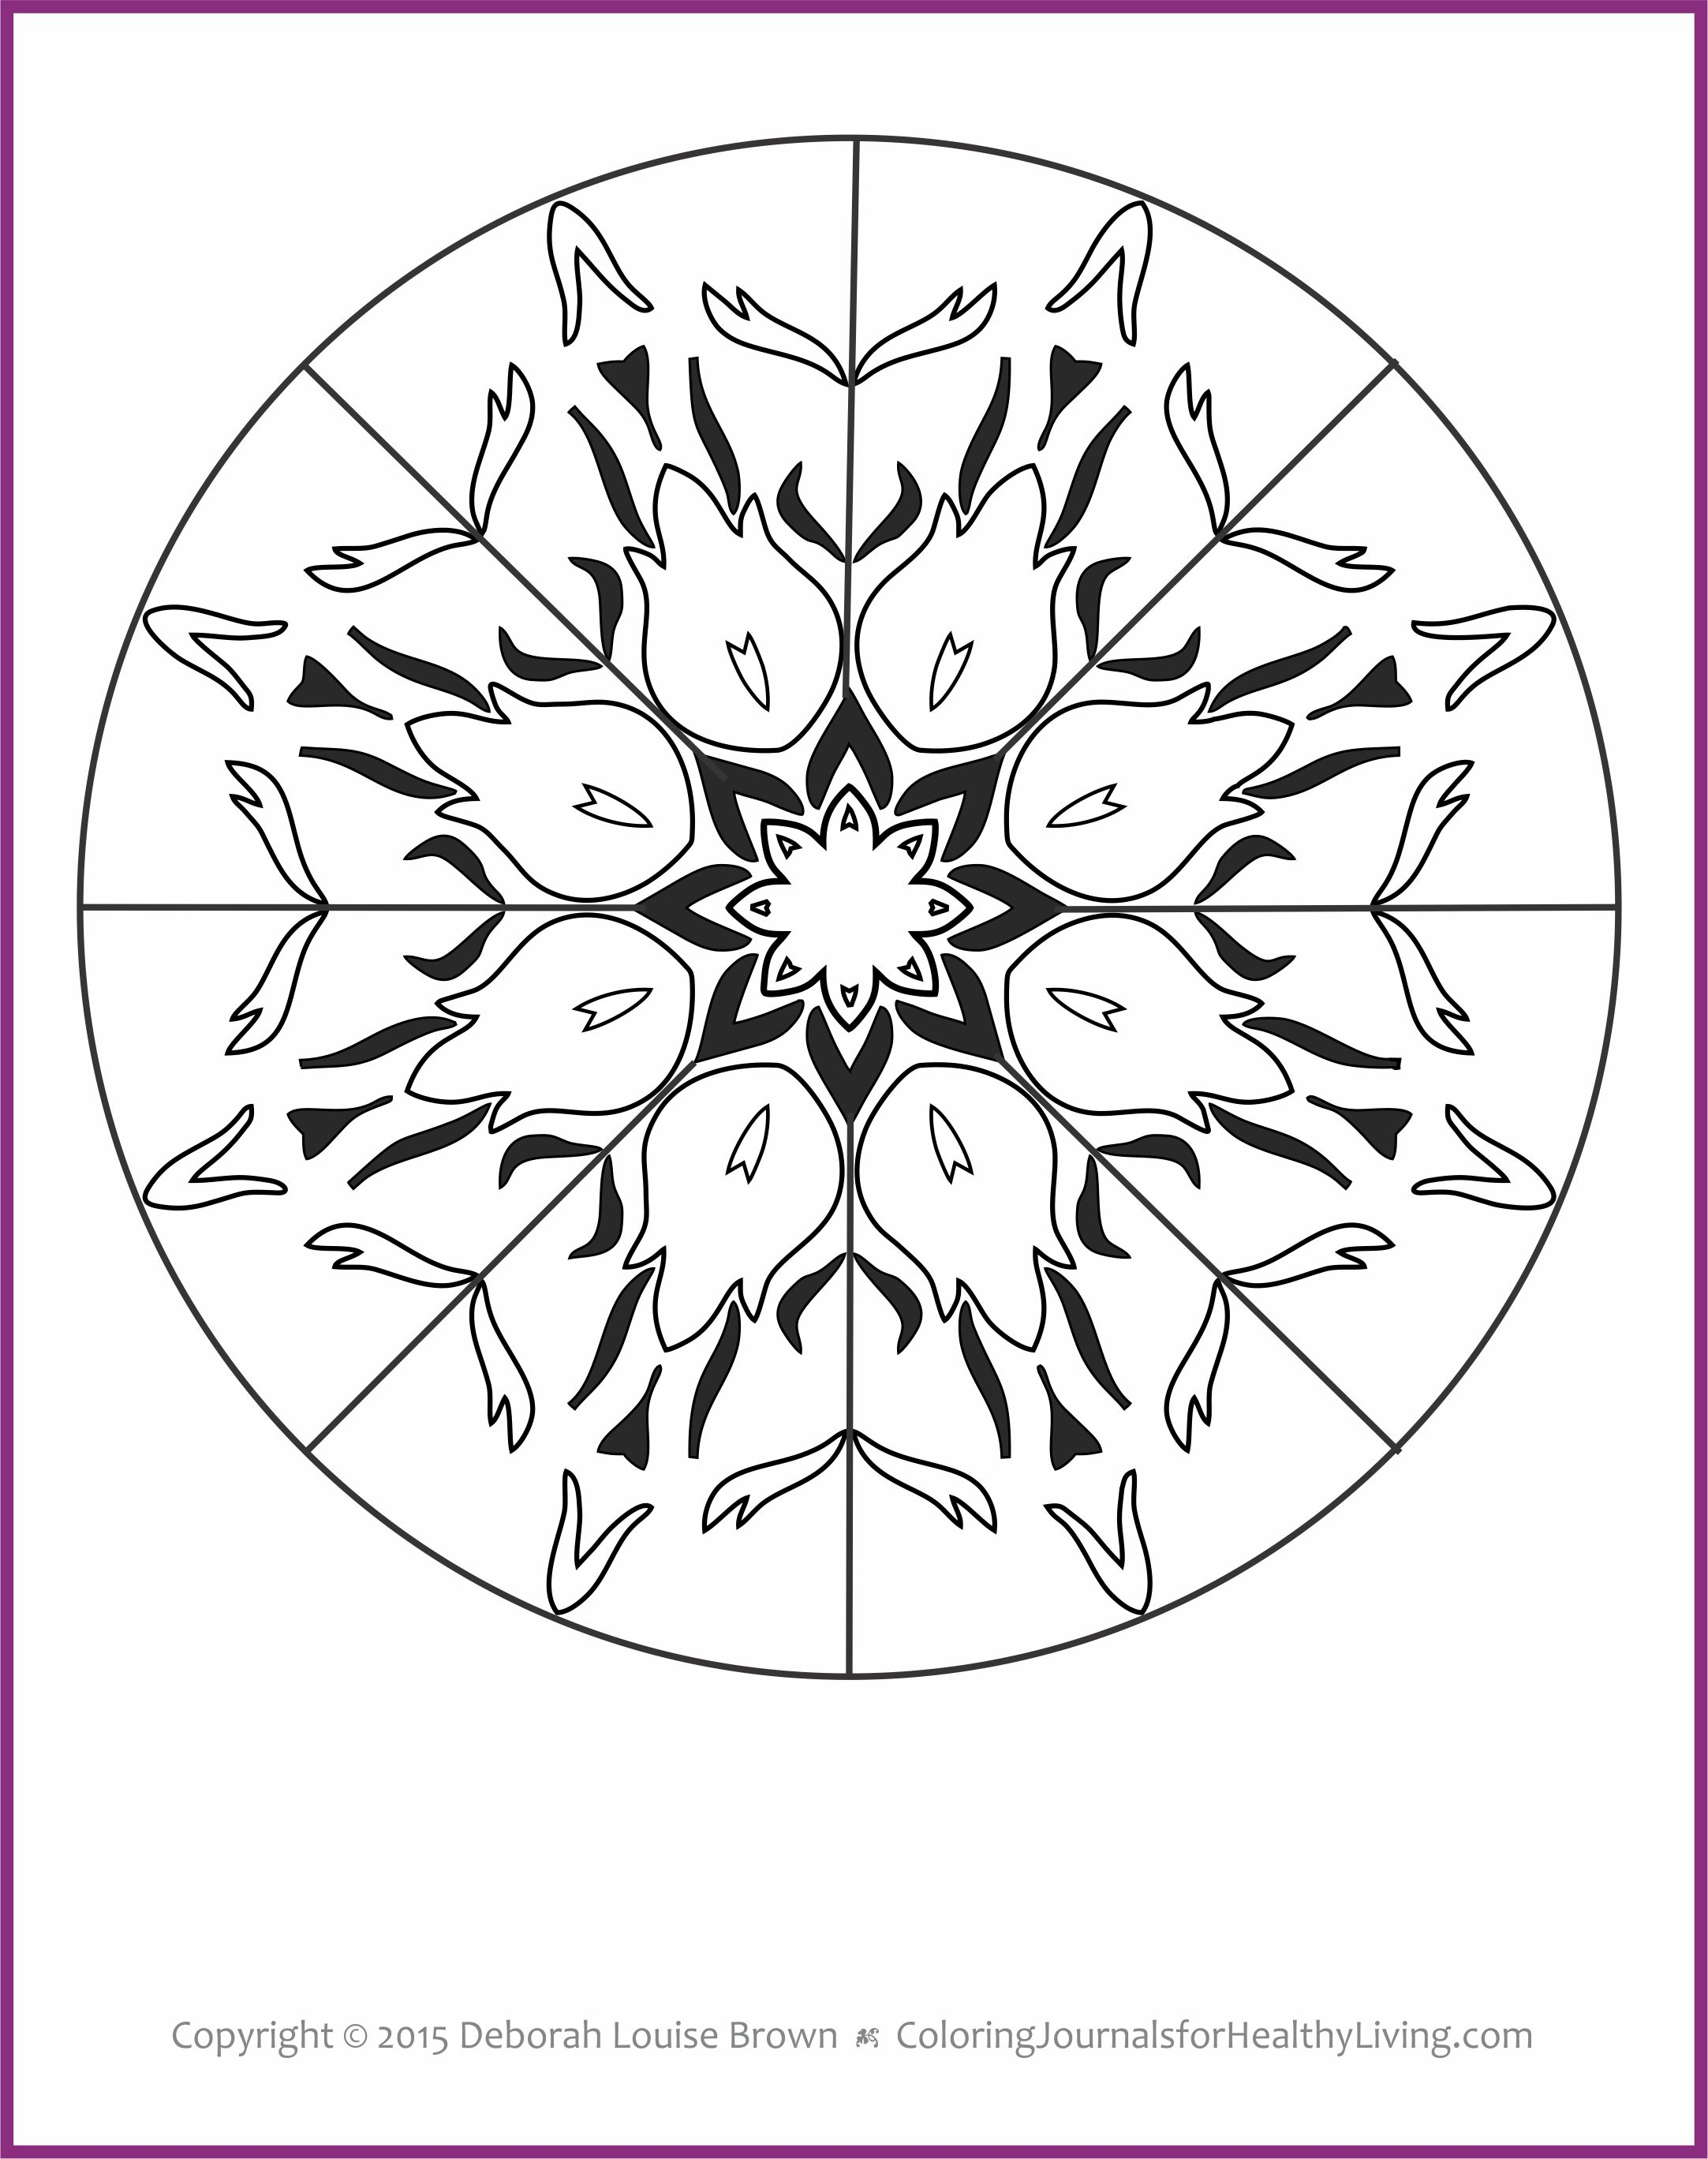 live healthy coloring pages - photo#35